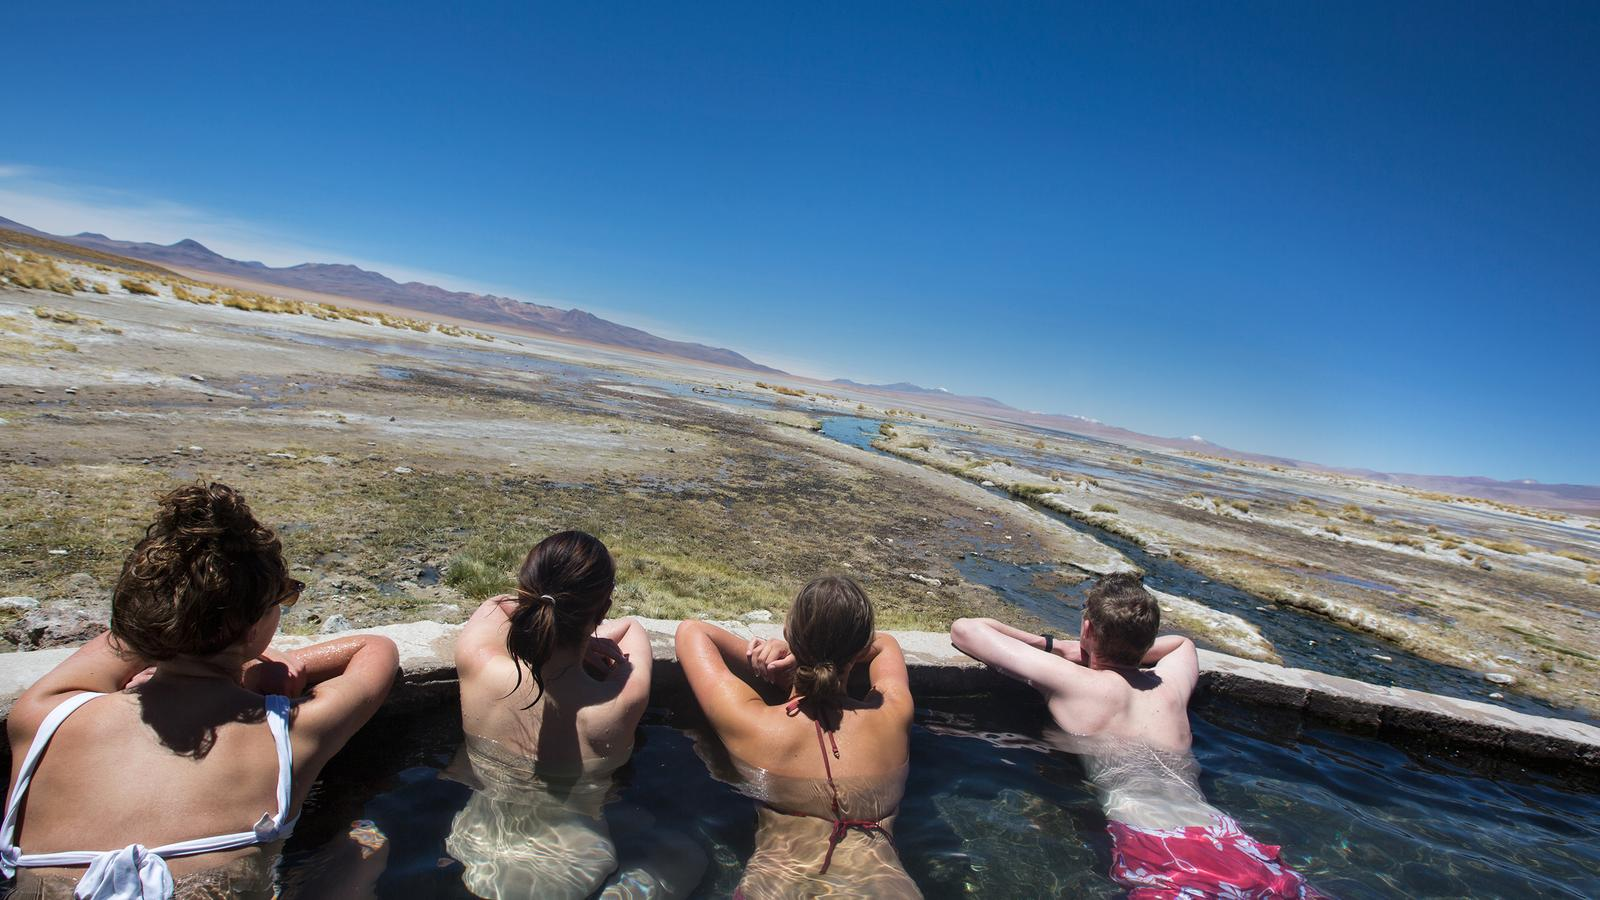 Travellers enjoy the views of Uyuni from the hot springs